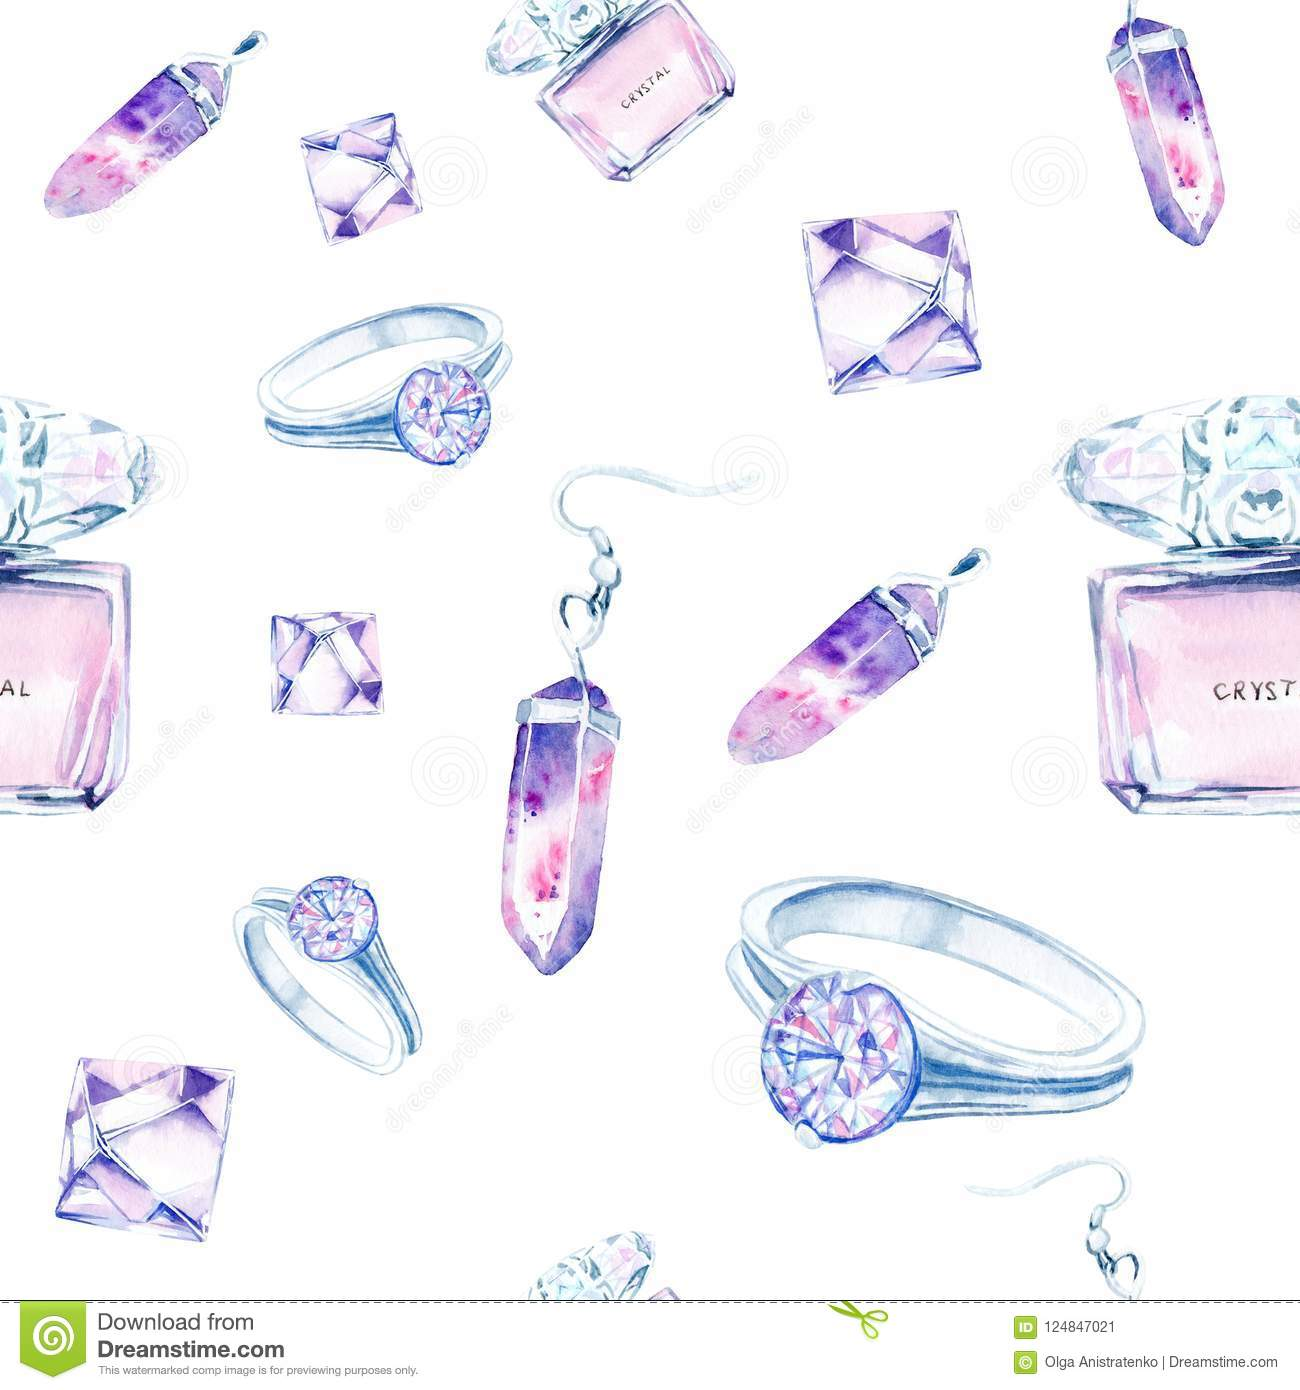 Watercolor Drawings Of Crystals, Jewelry Made Of Crystals